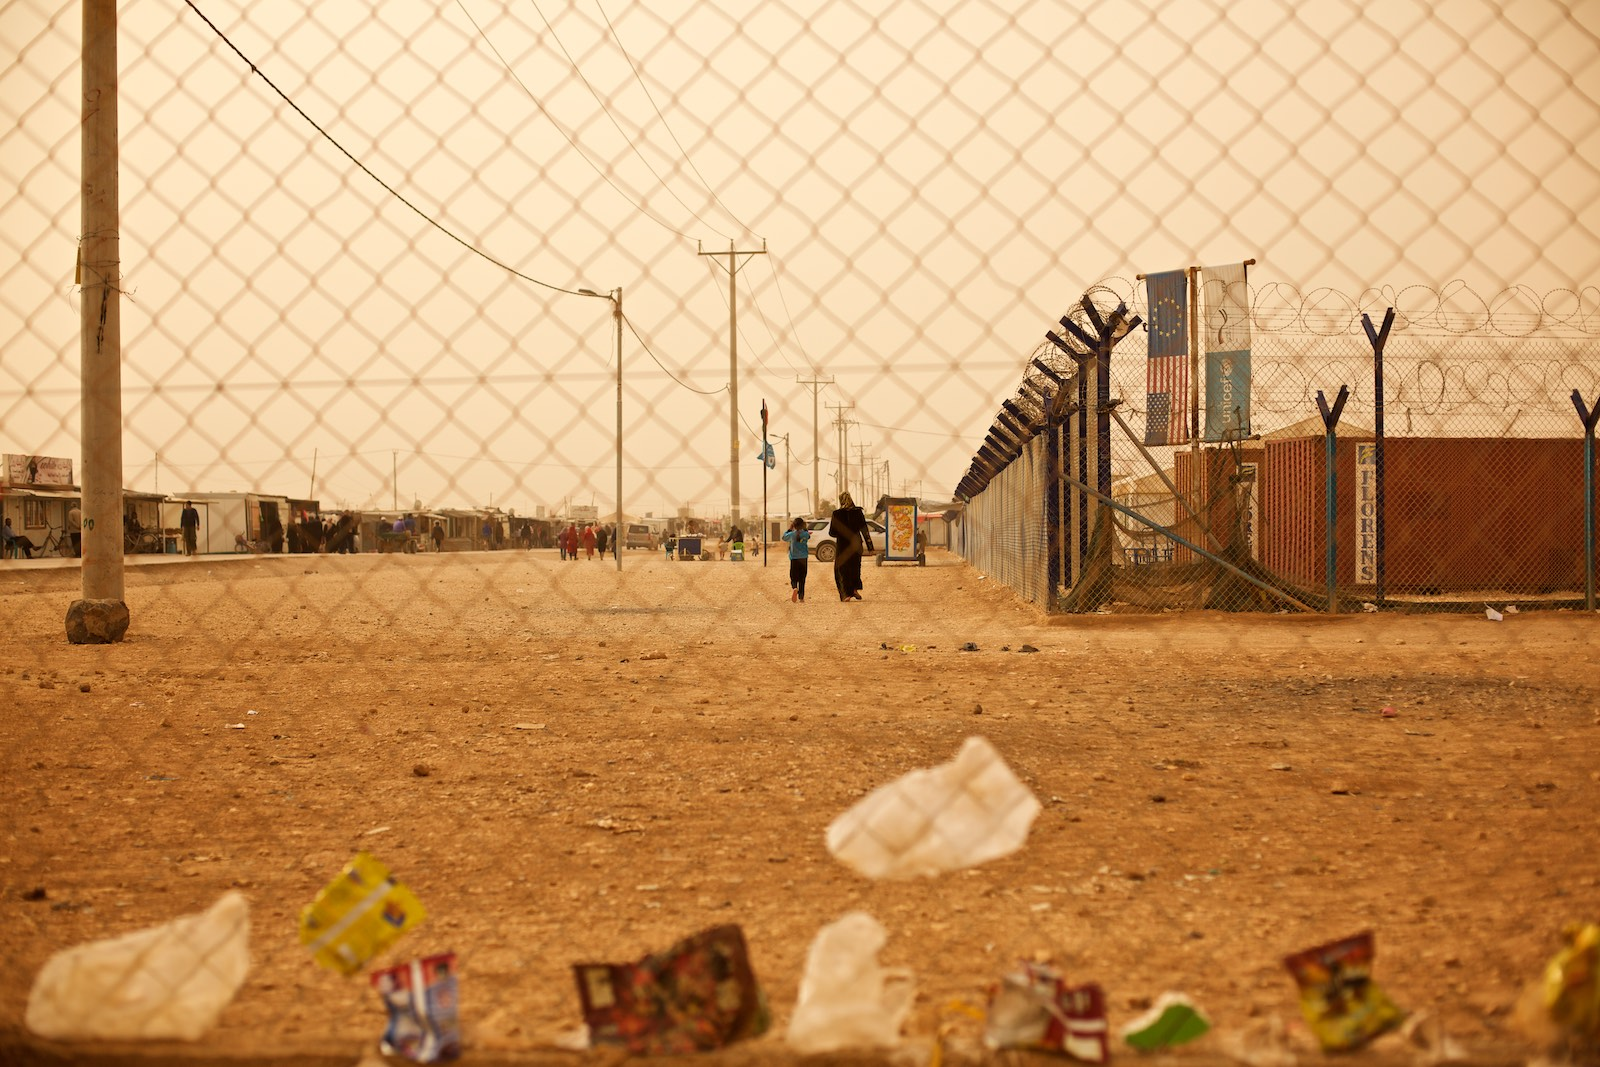 Much of its services is provided by the international community, as well as regional state and private donors. However, money has been drying up lately, with rations cut and services scaled back.(photo: Denis Bosnic)